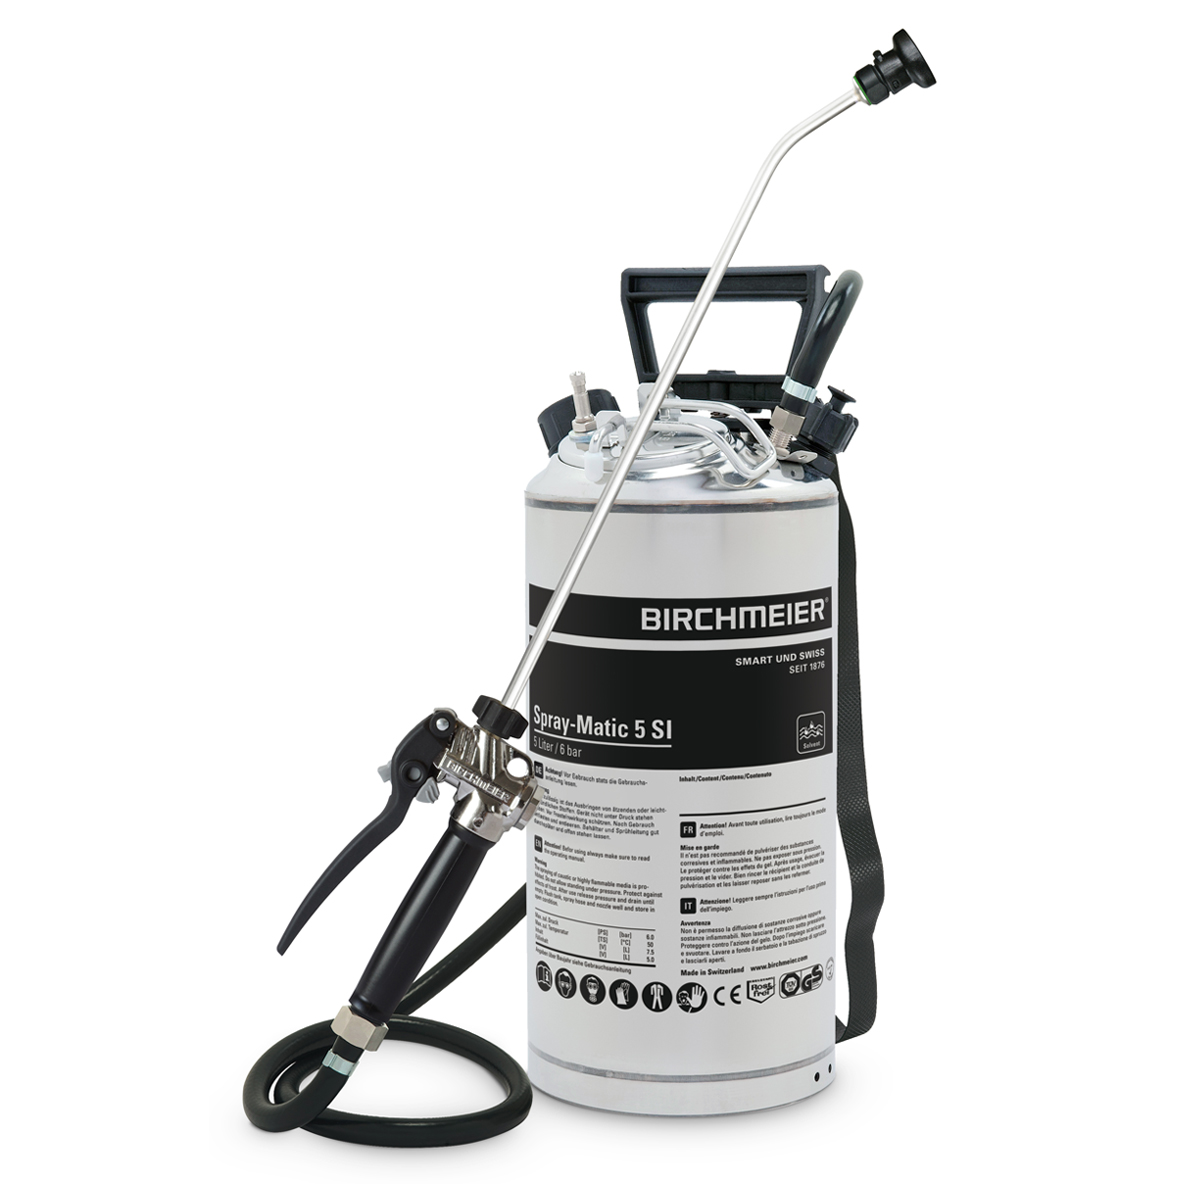 Spray-Matic 5 SI with compressed-air union